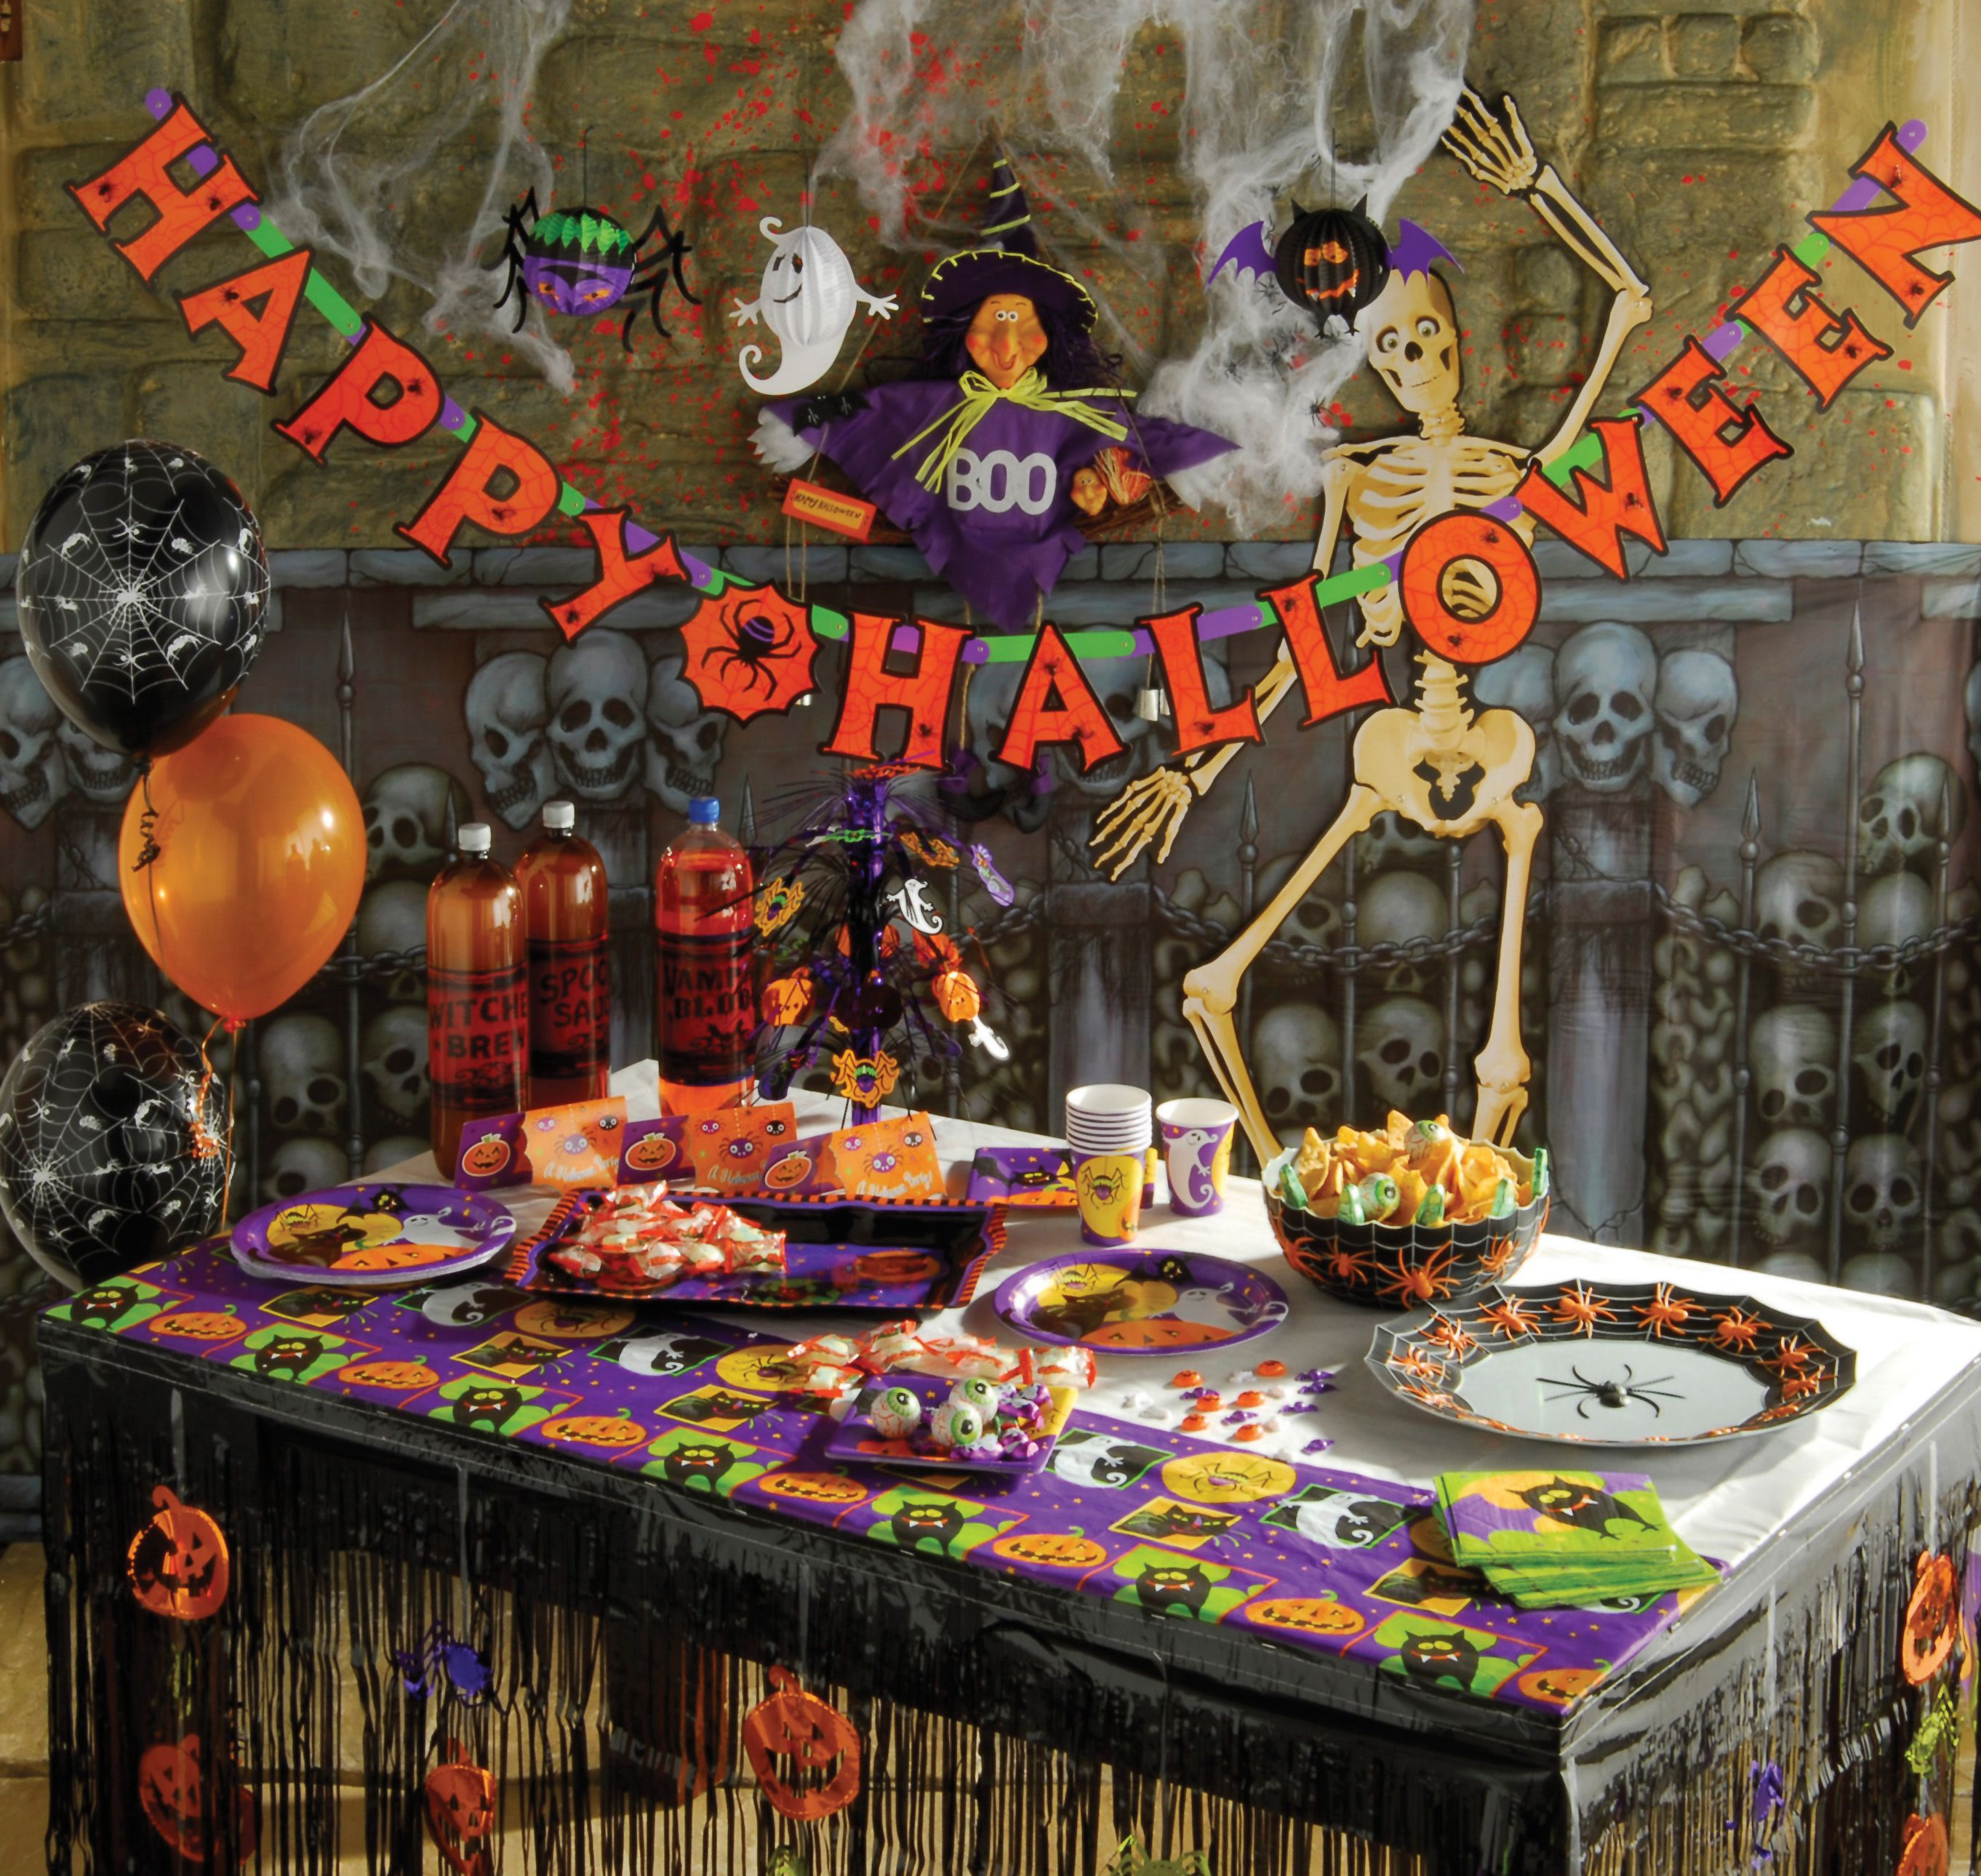 Classic Halloween Decorations Photo Album | typat.com